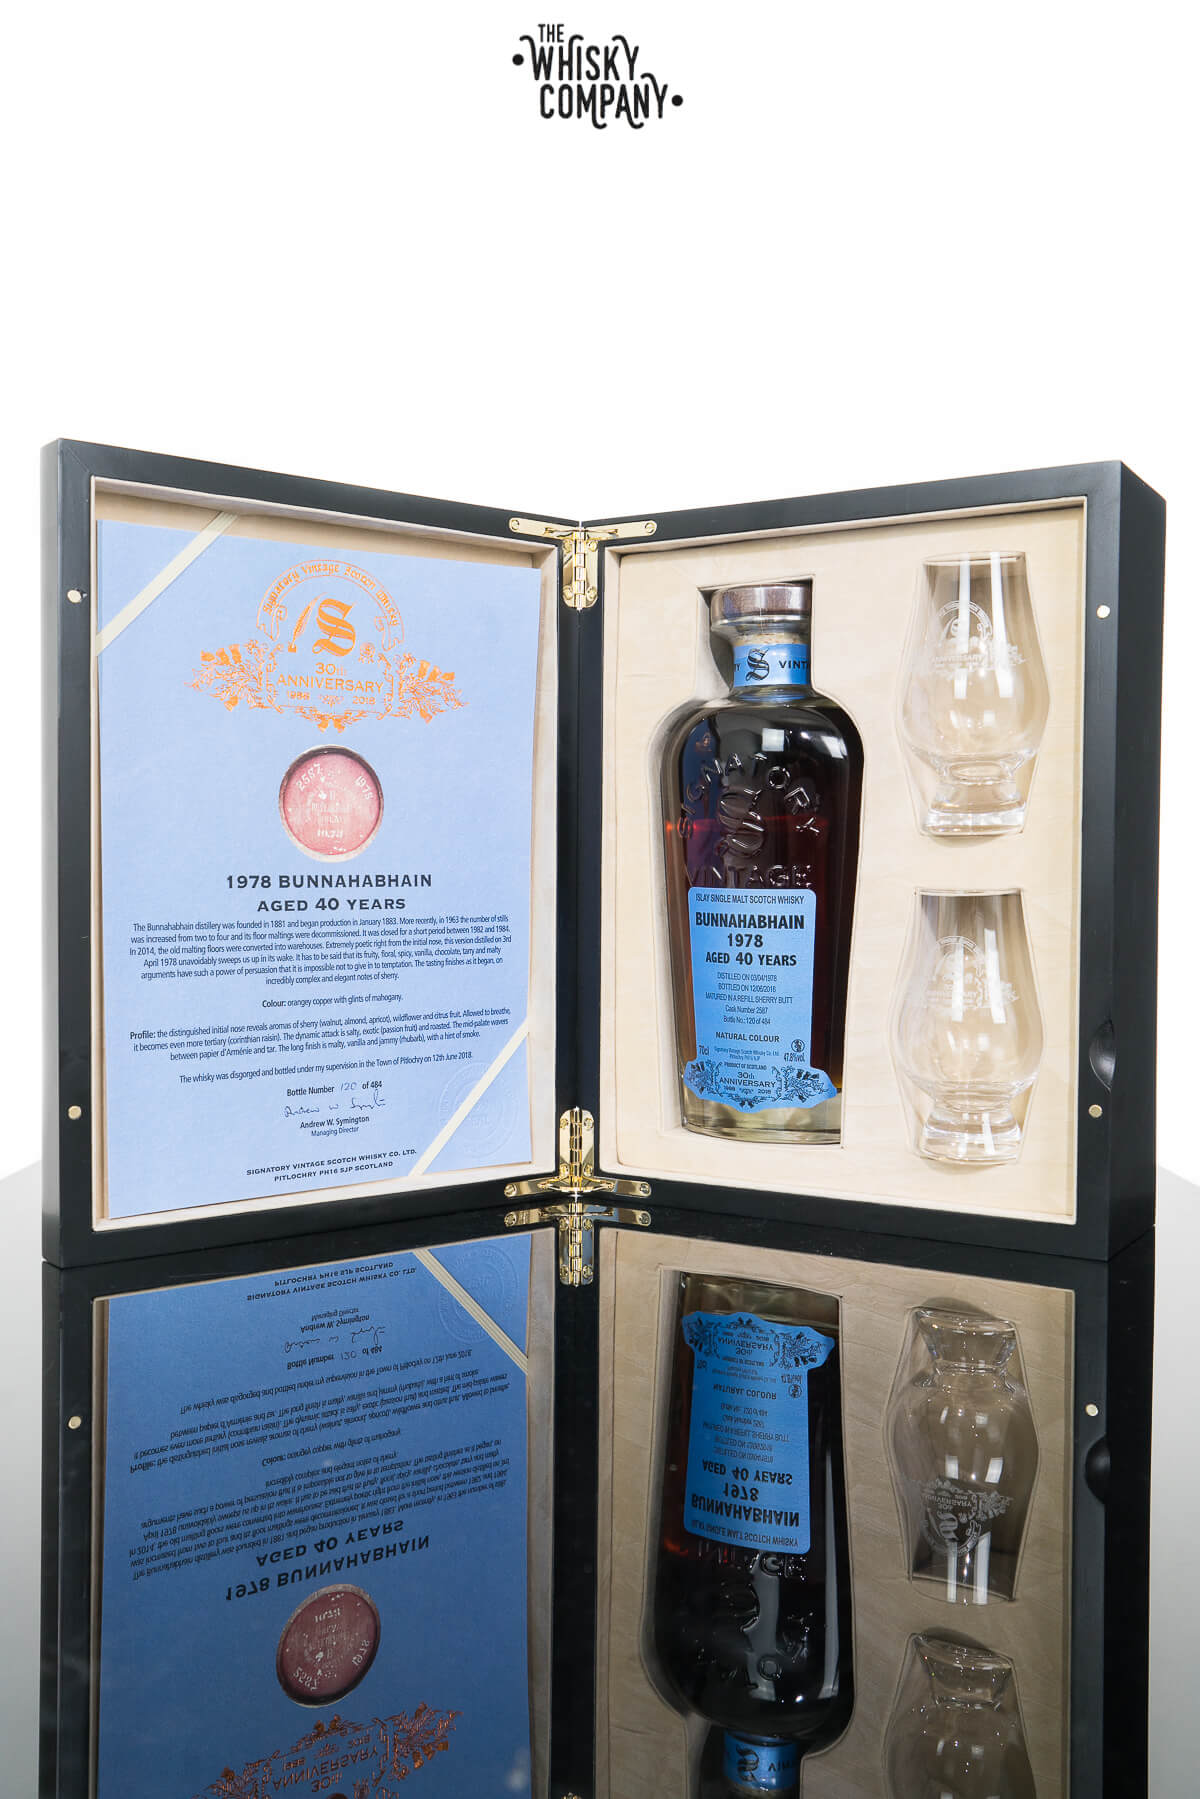 Bunnahabhain 1978 Aged 40 Years - Signatory Vintage 30th Anniversary (700ml)